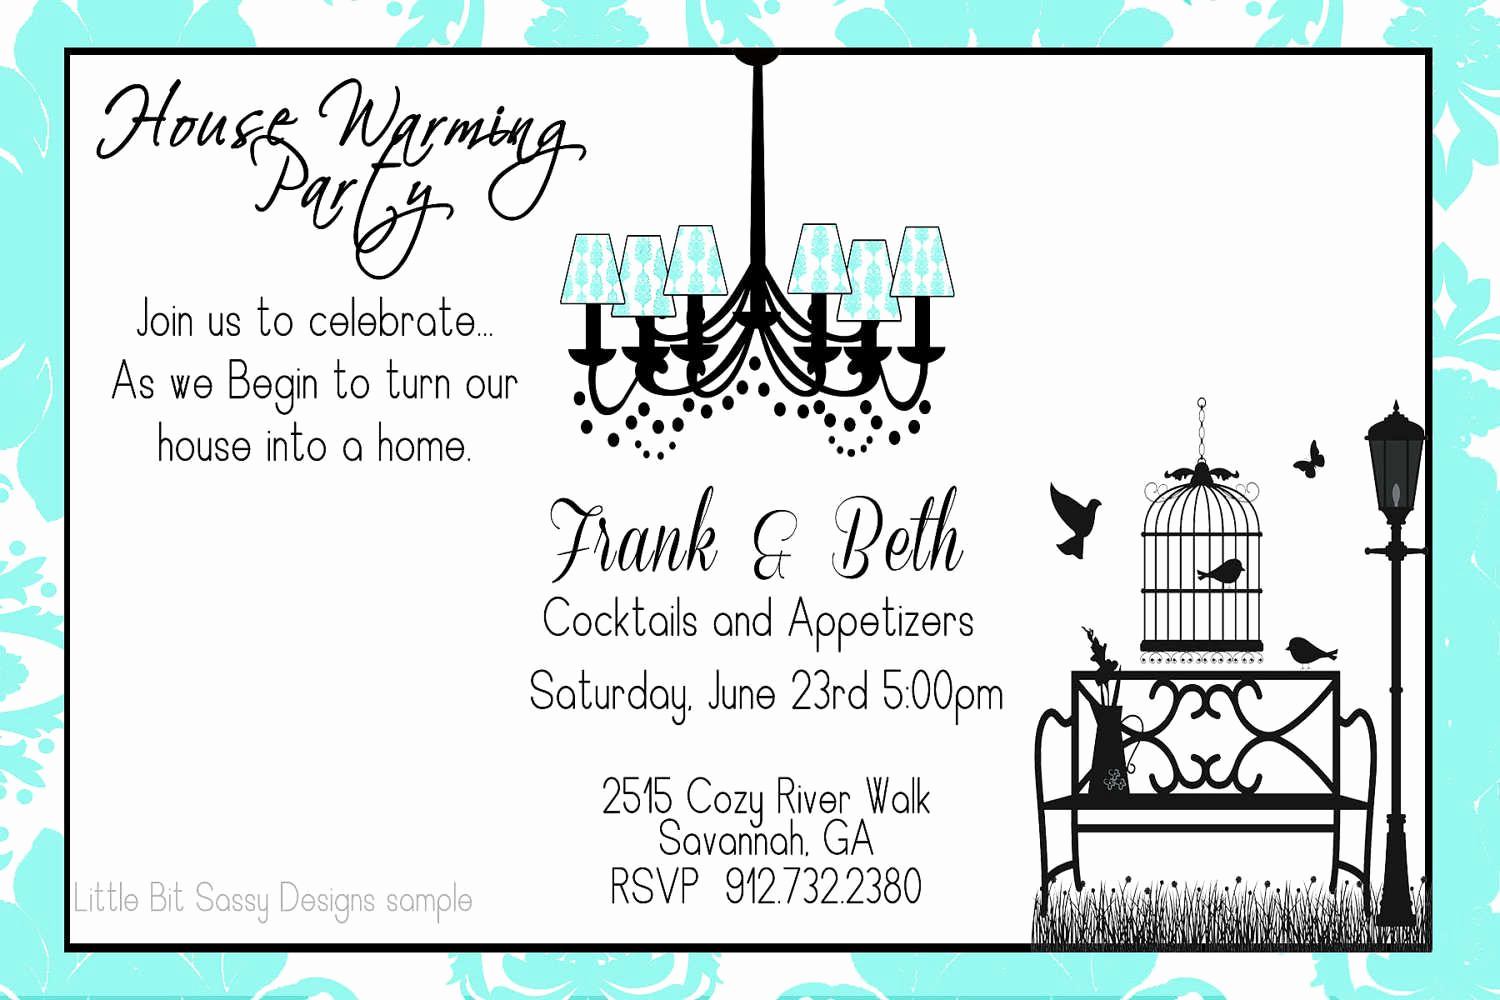 Housewarming Invitation Wording Funny Elegant Housewarming Party Invitation Wording